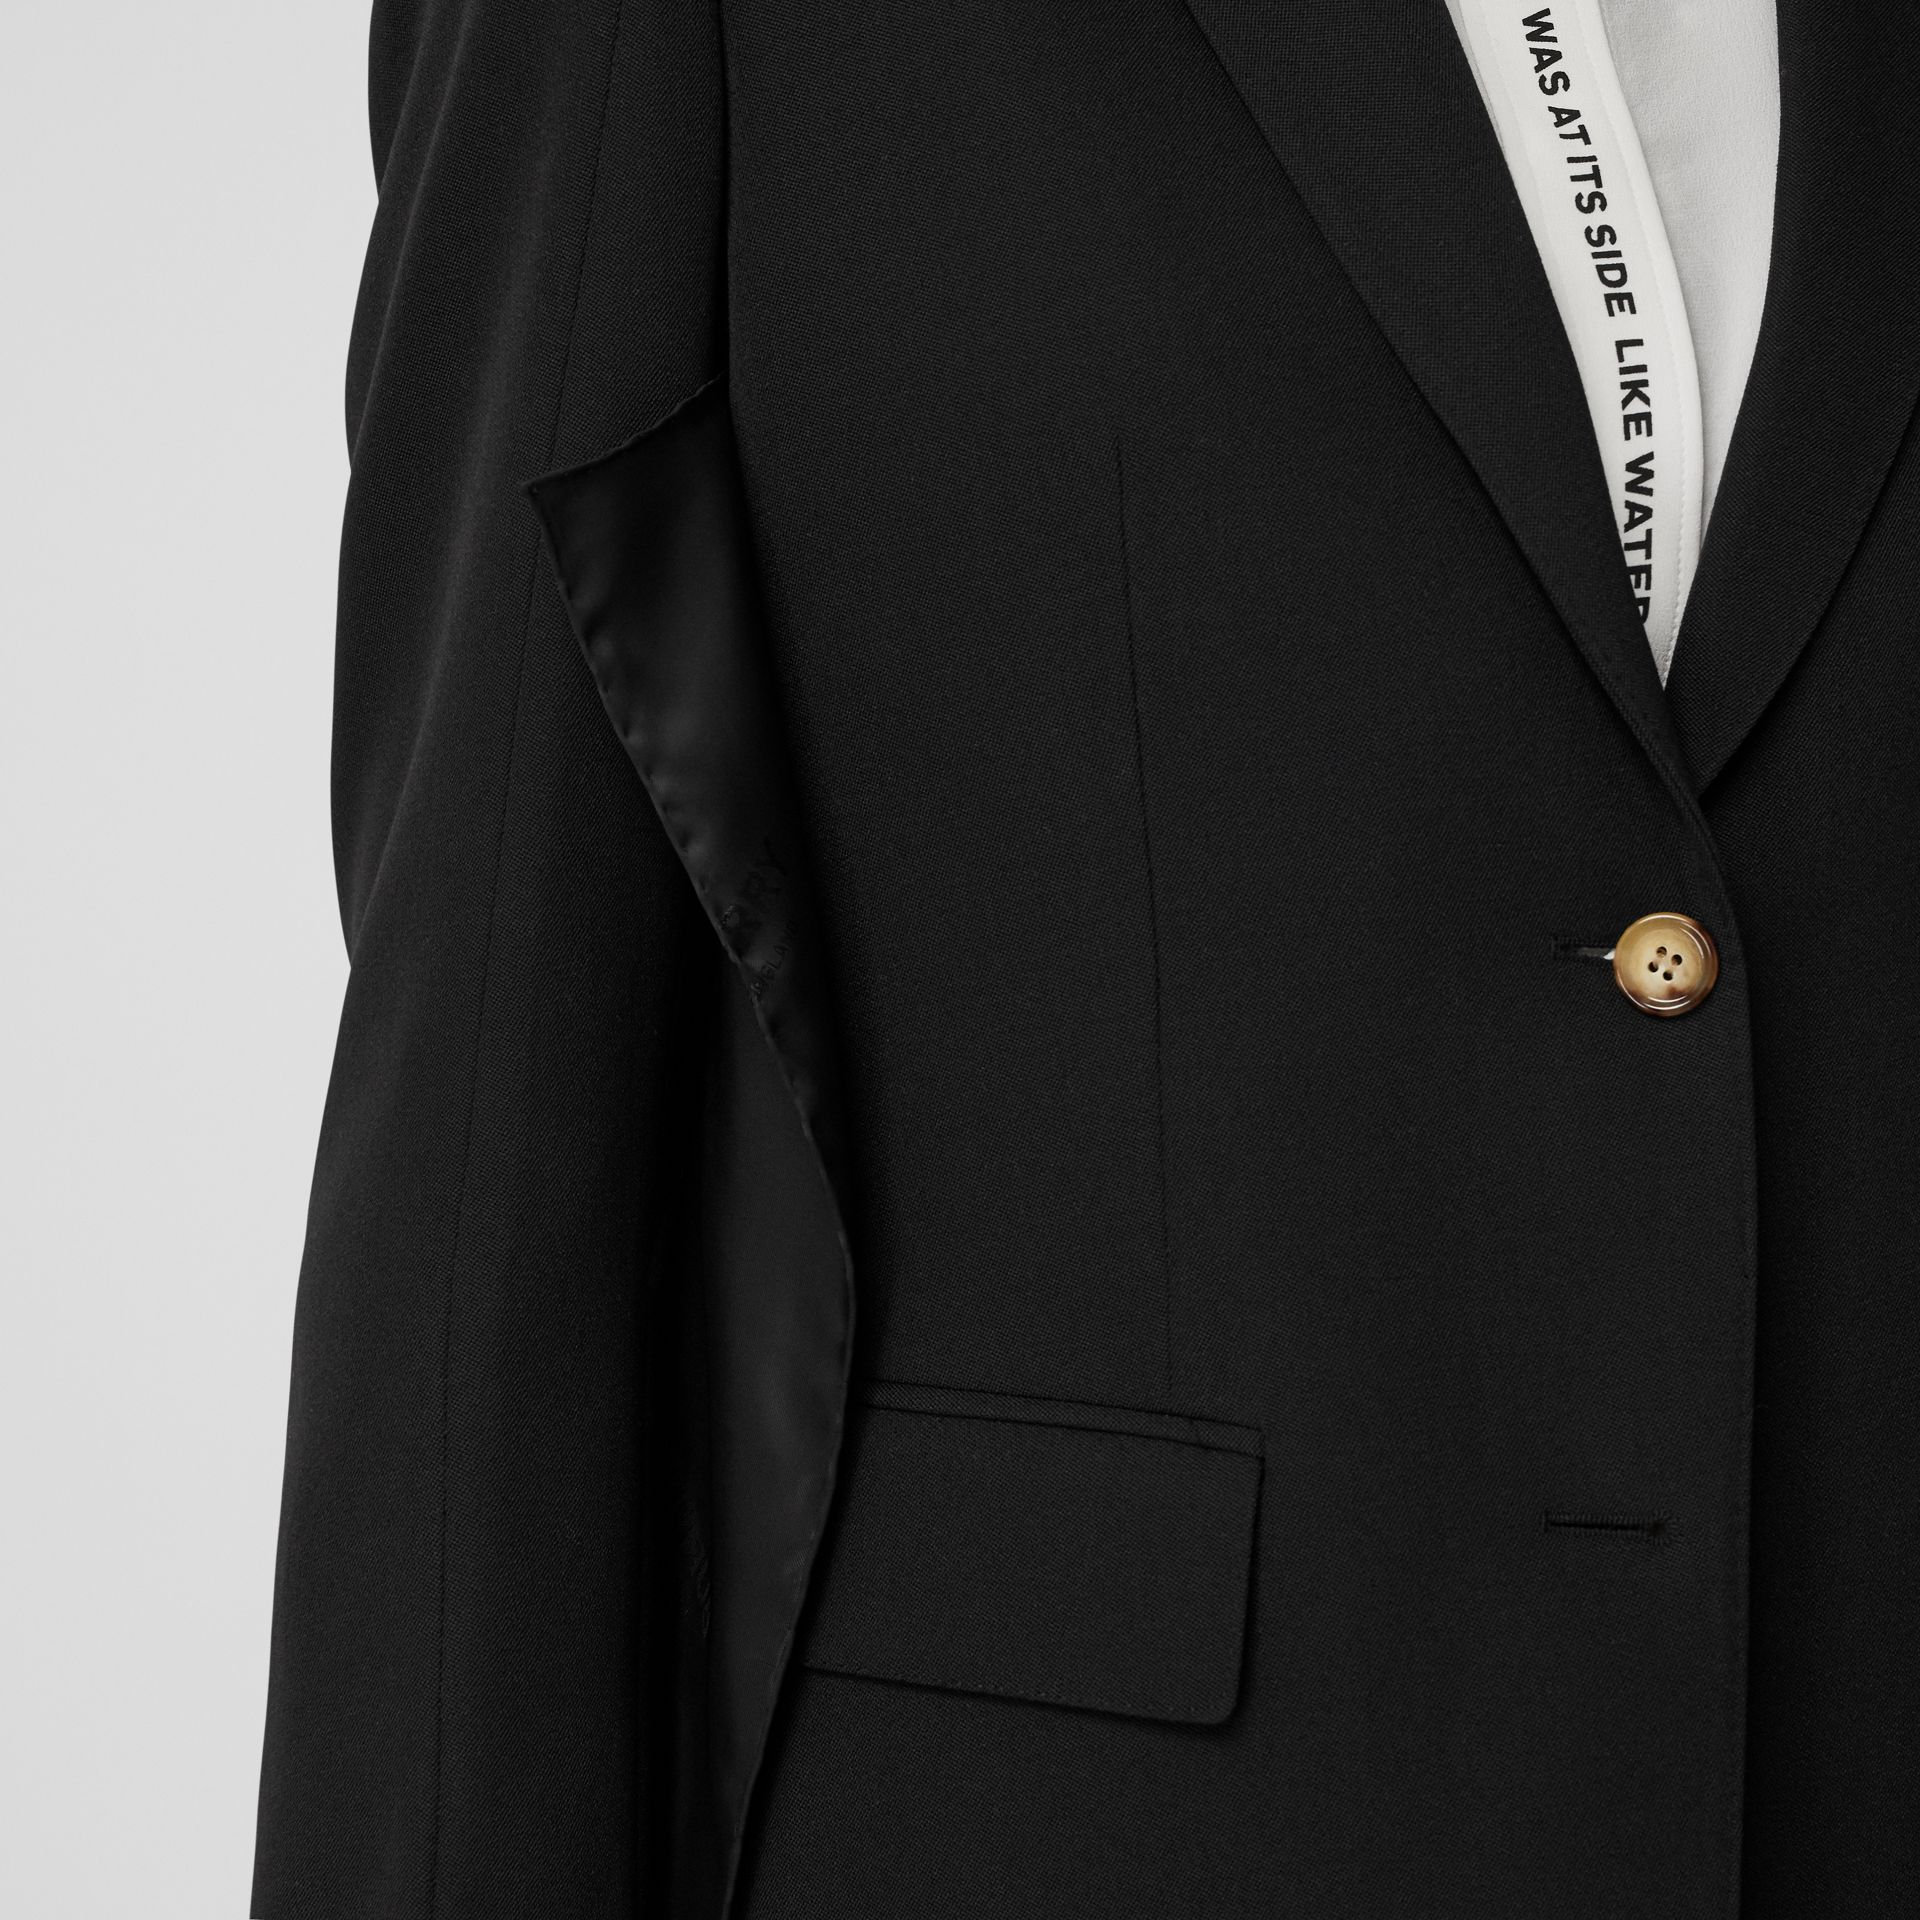 Logo Panel Detail Wool Tailored Jacket in Black - Women | Burberry United States - gallery image 1